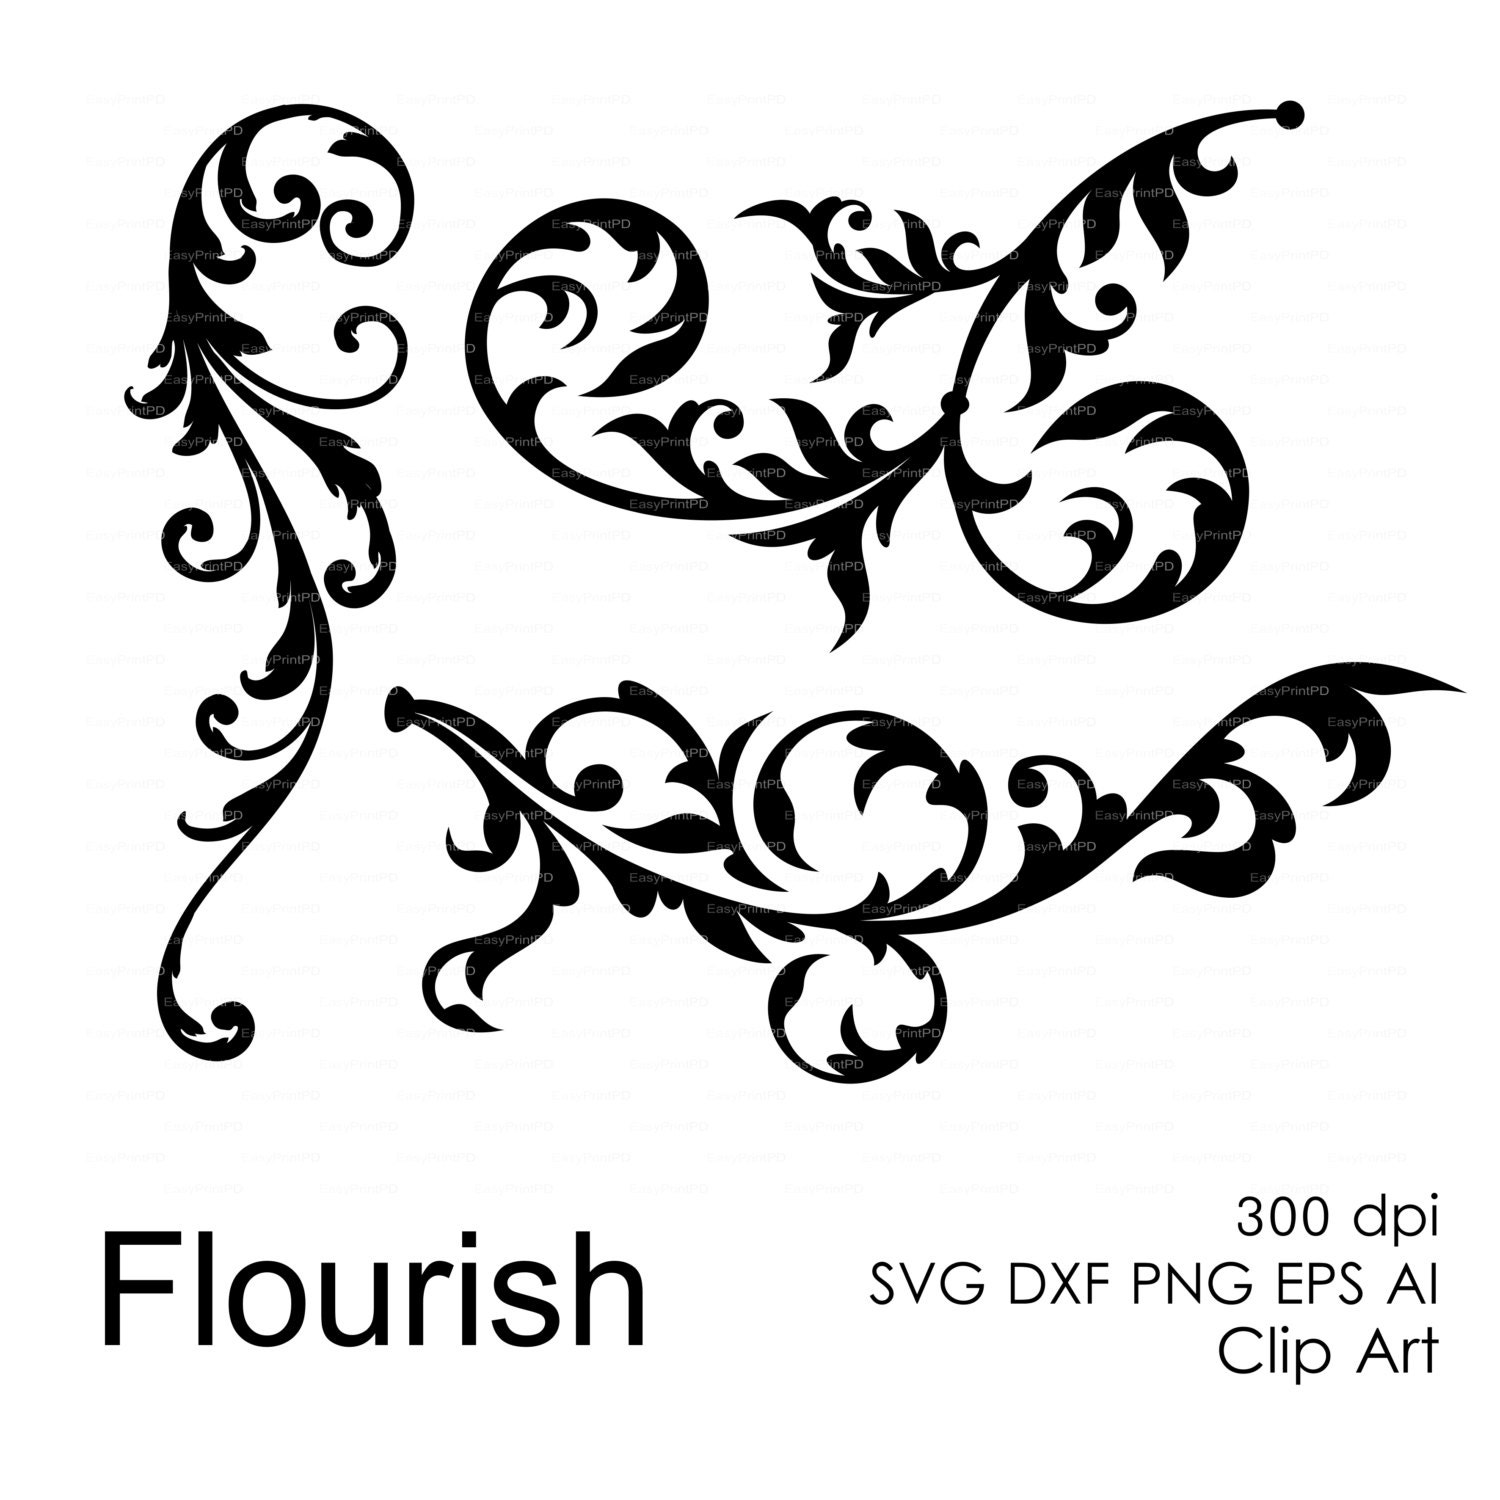 Flourish svg dxf eps ai png Overlays template